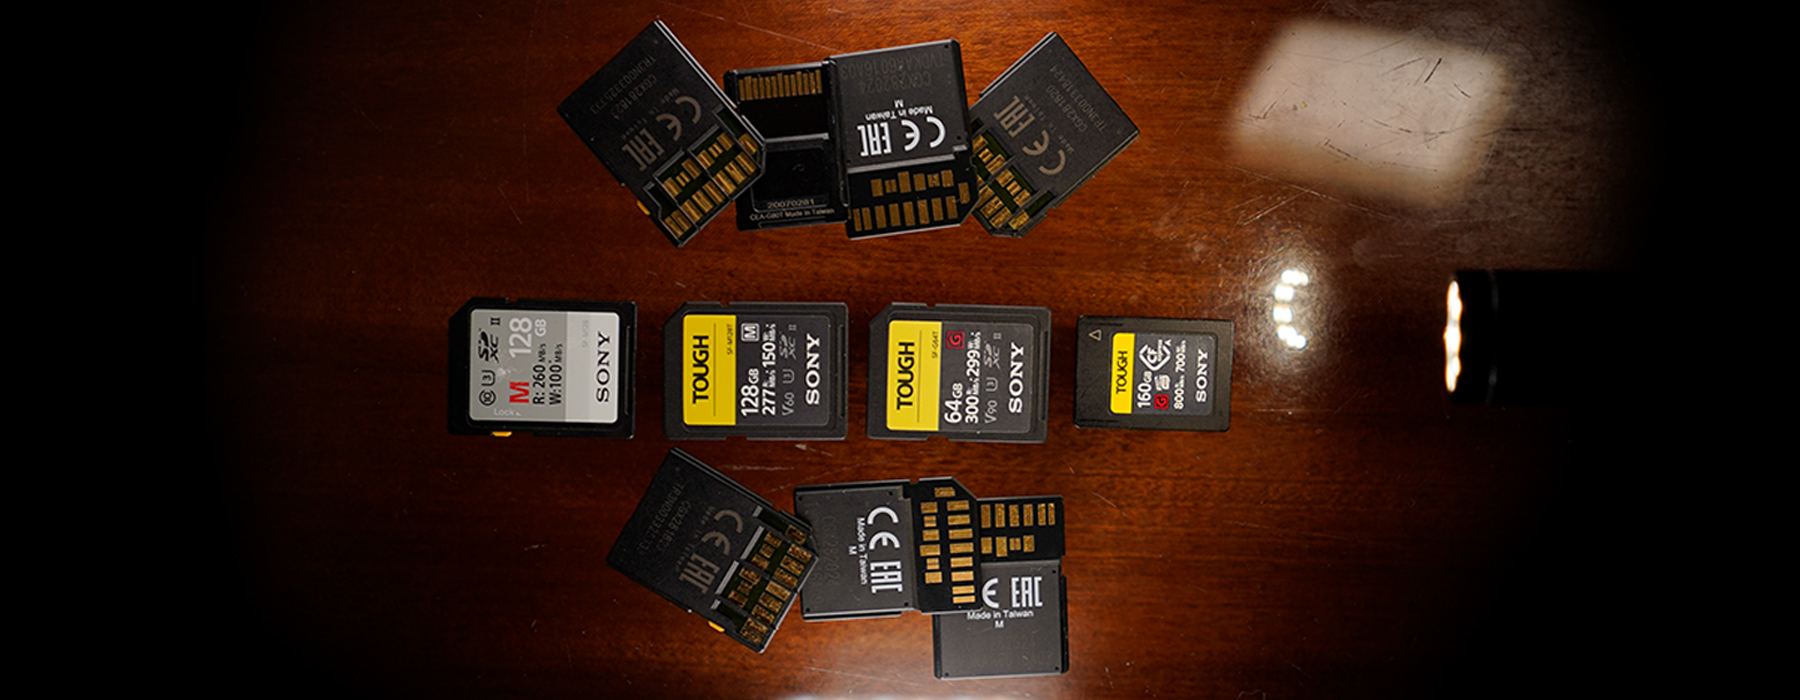 A7Siii Memory Card Guide